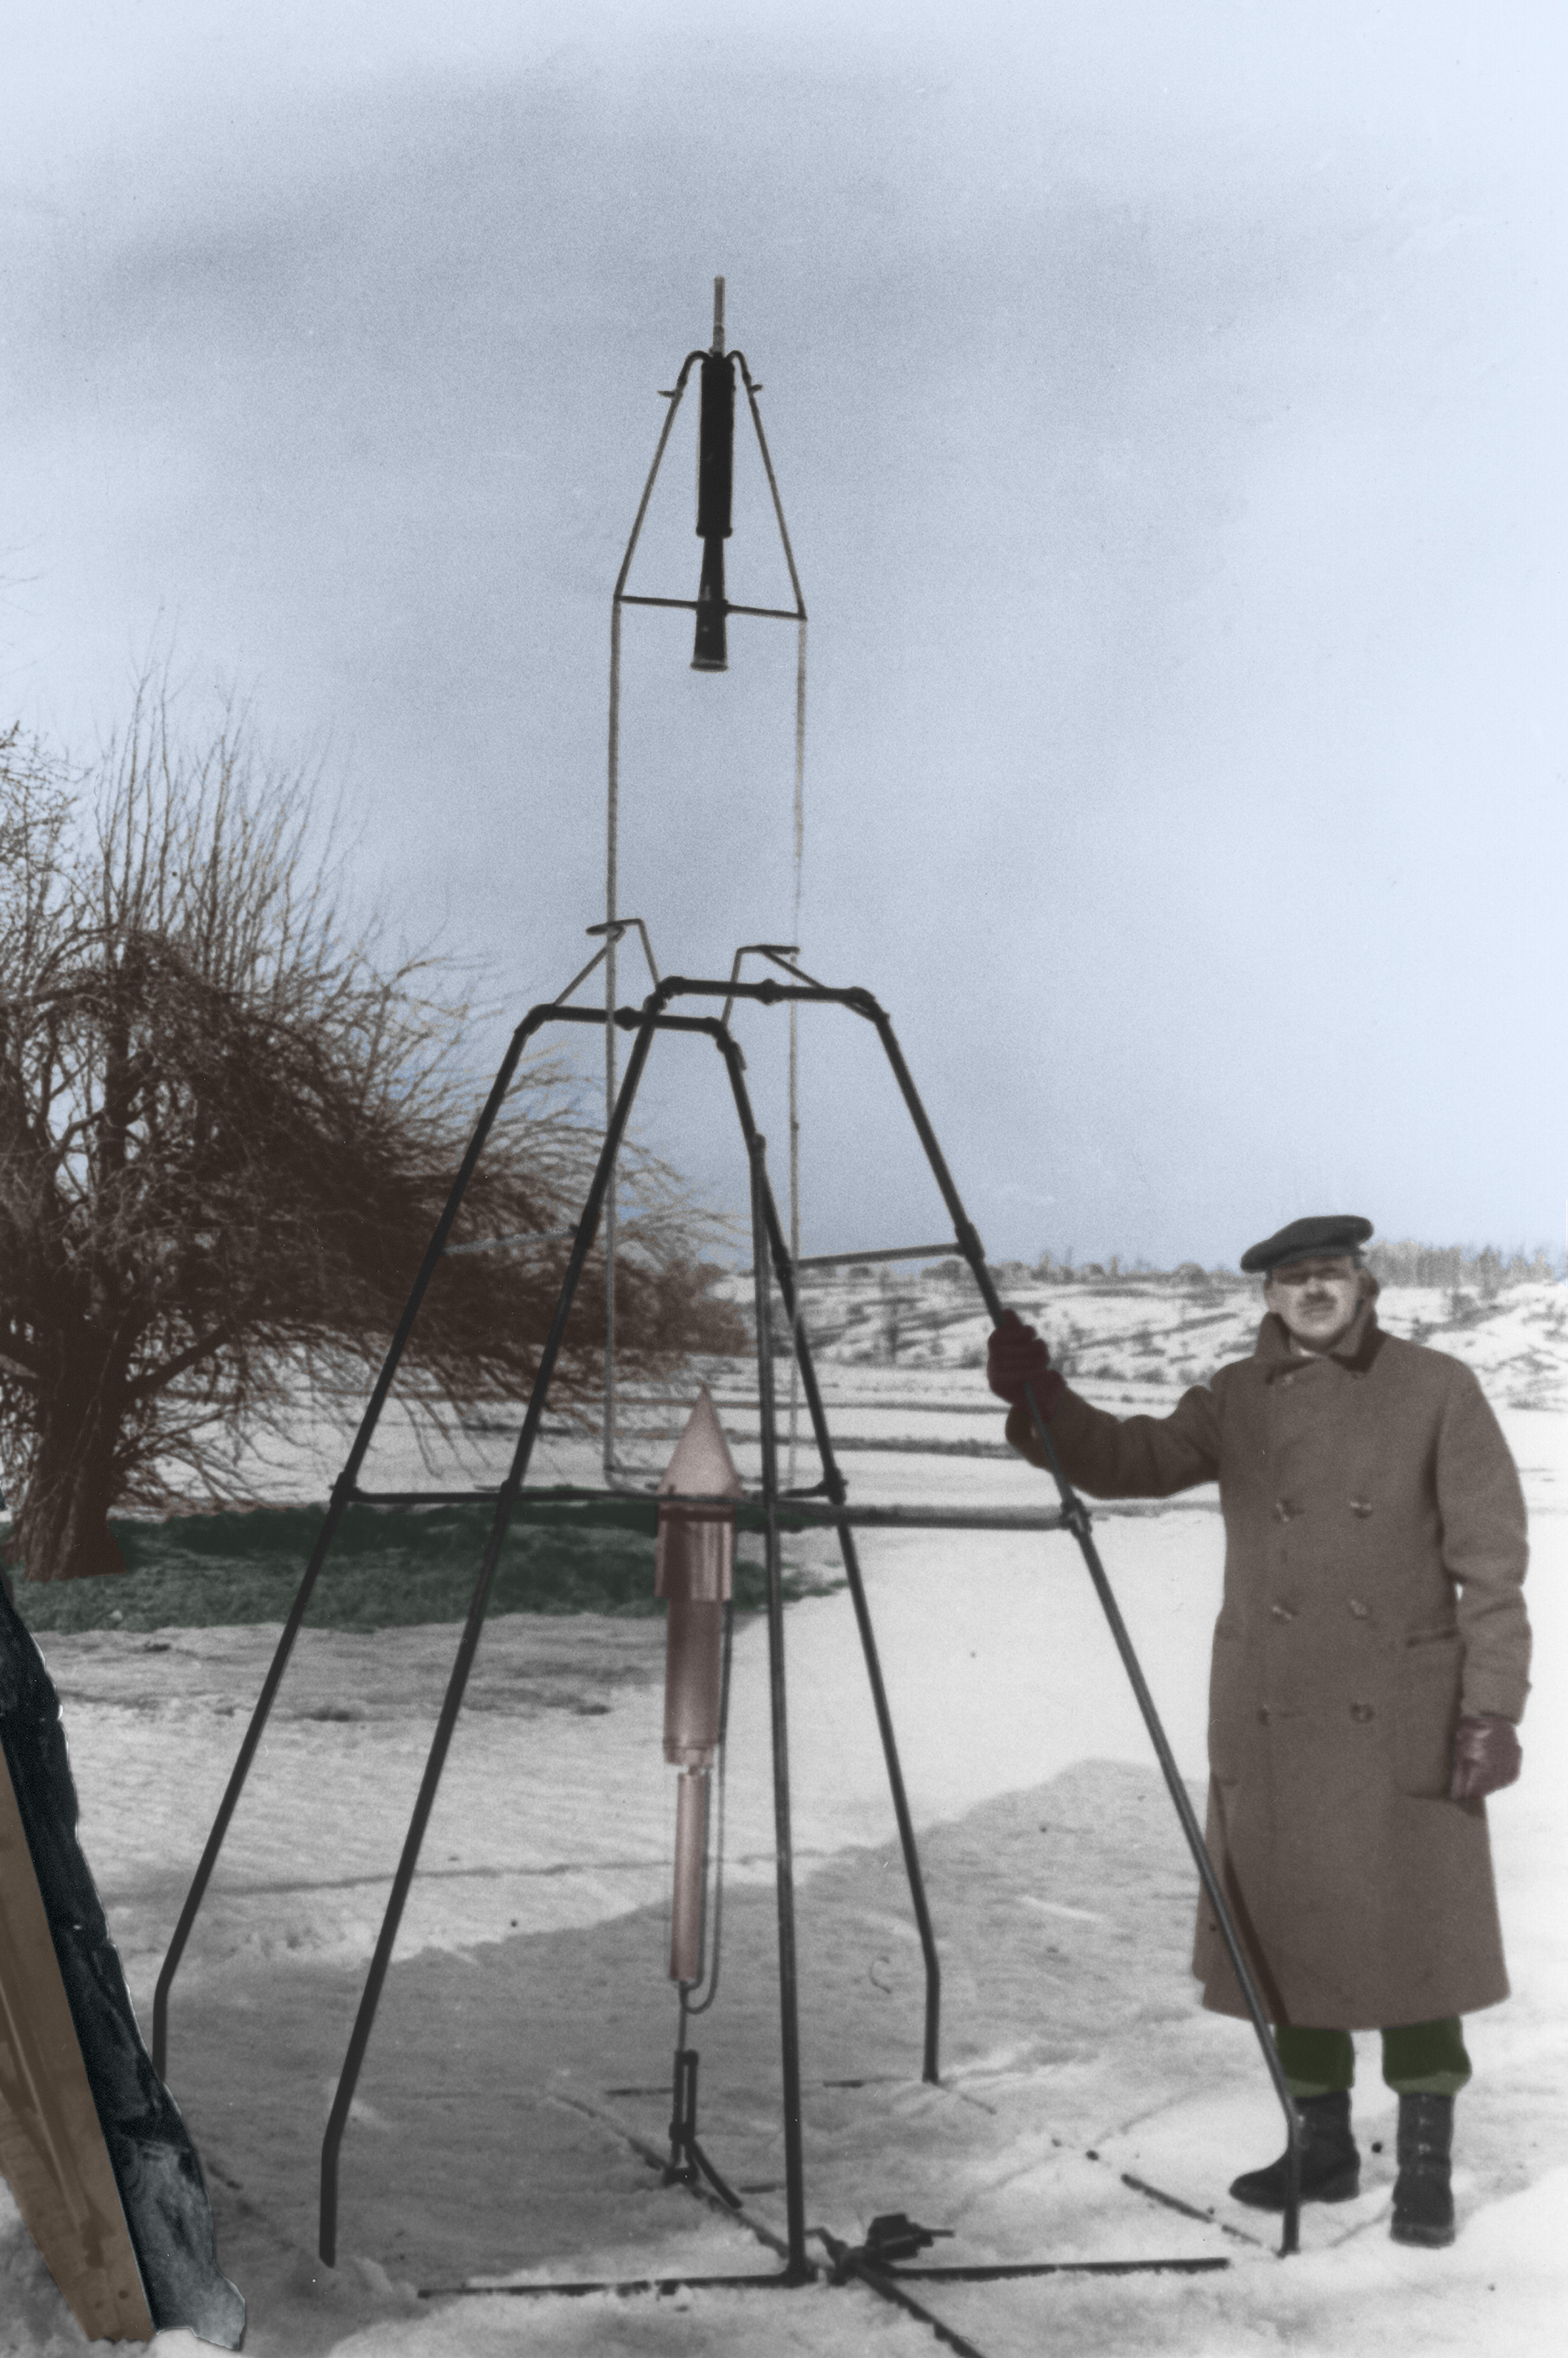 Robert Gooddard and His First Rocket, 1926